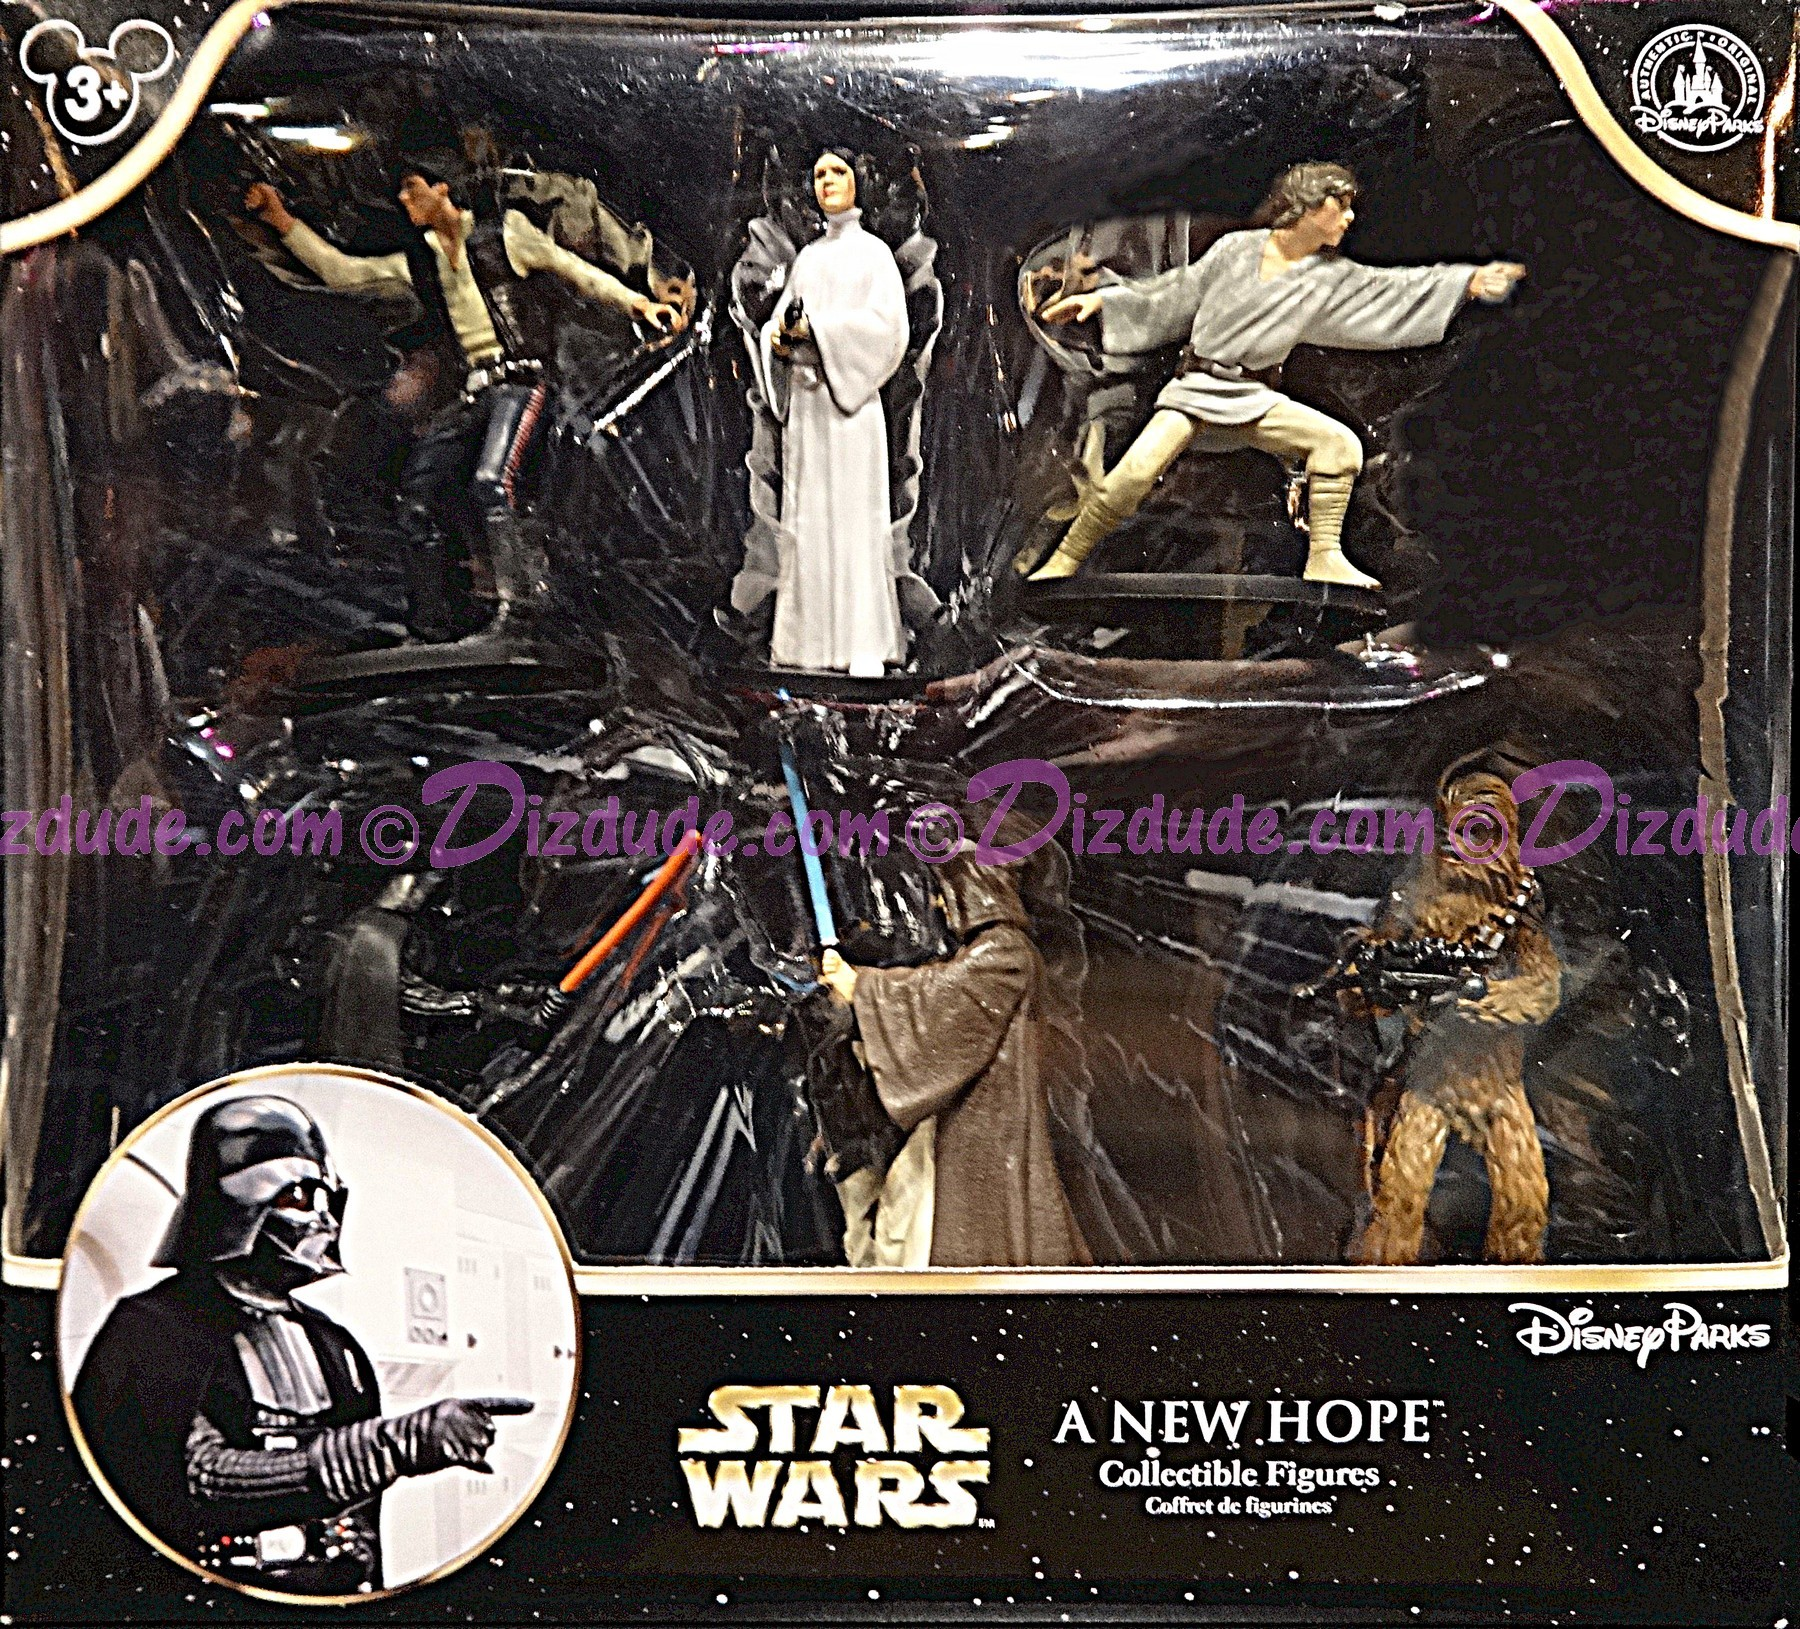 Star Wars A New Hope Collectible Figures ~ Disney Star Wars Weekends 2015